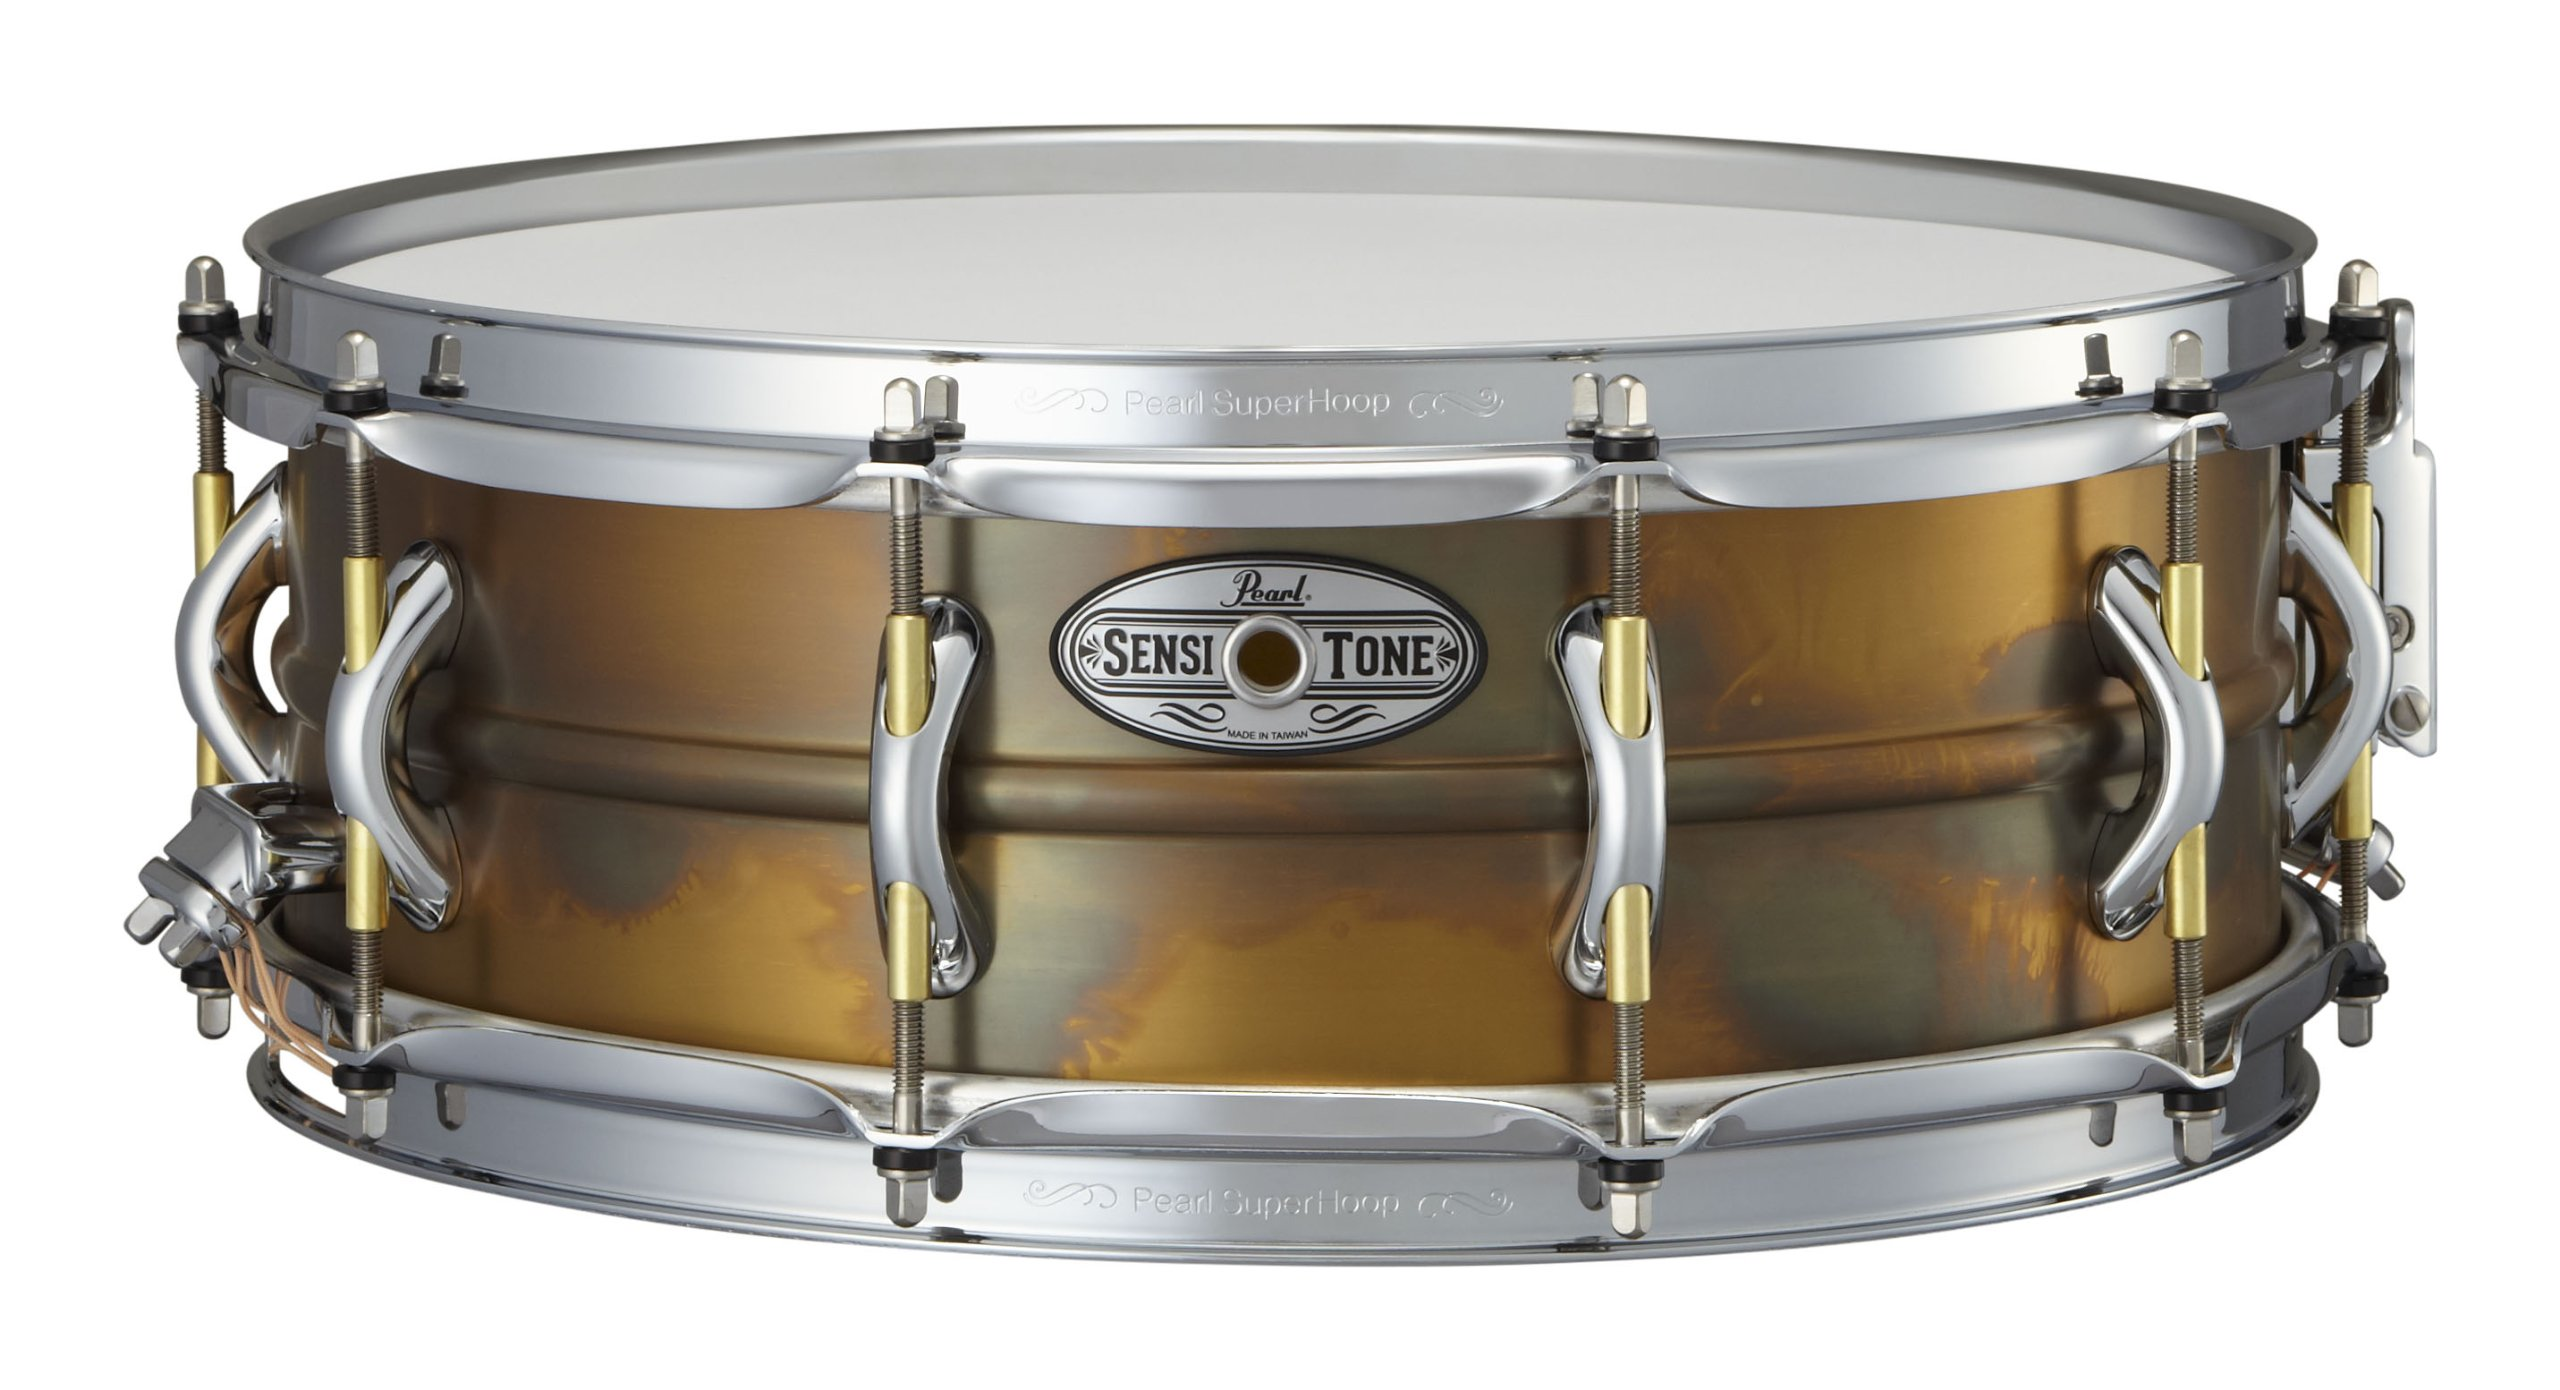 Pearl STA1450FB 14 x 5 Inches Sensitone Premium Snare Drum - Beaded Brass